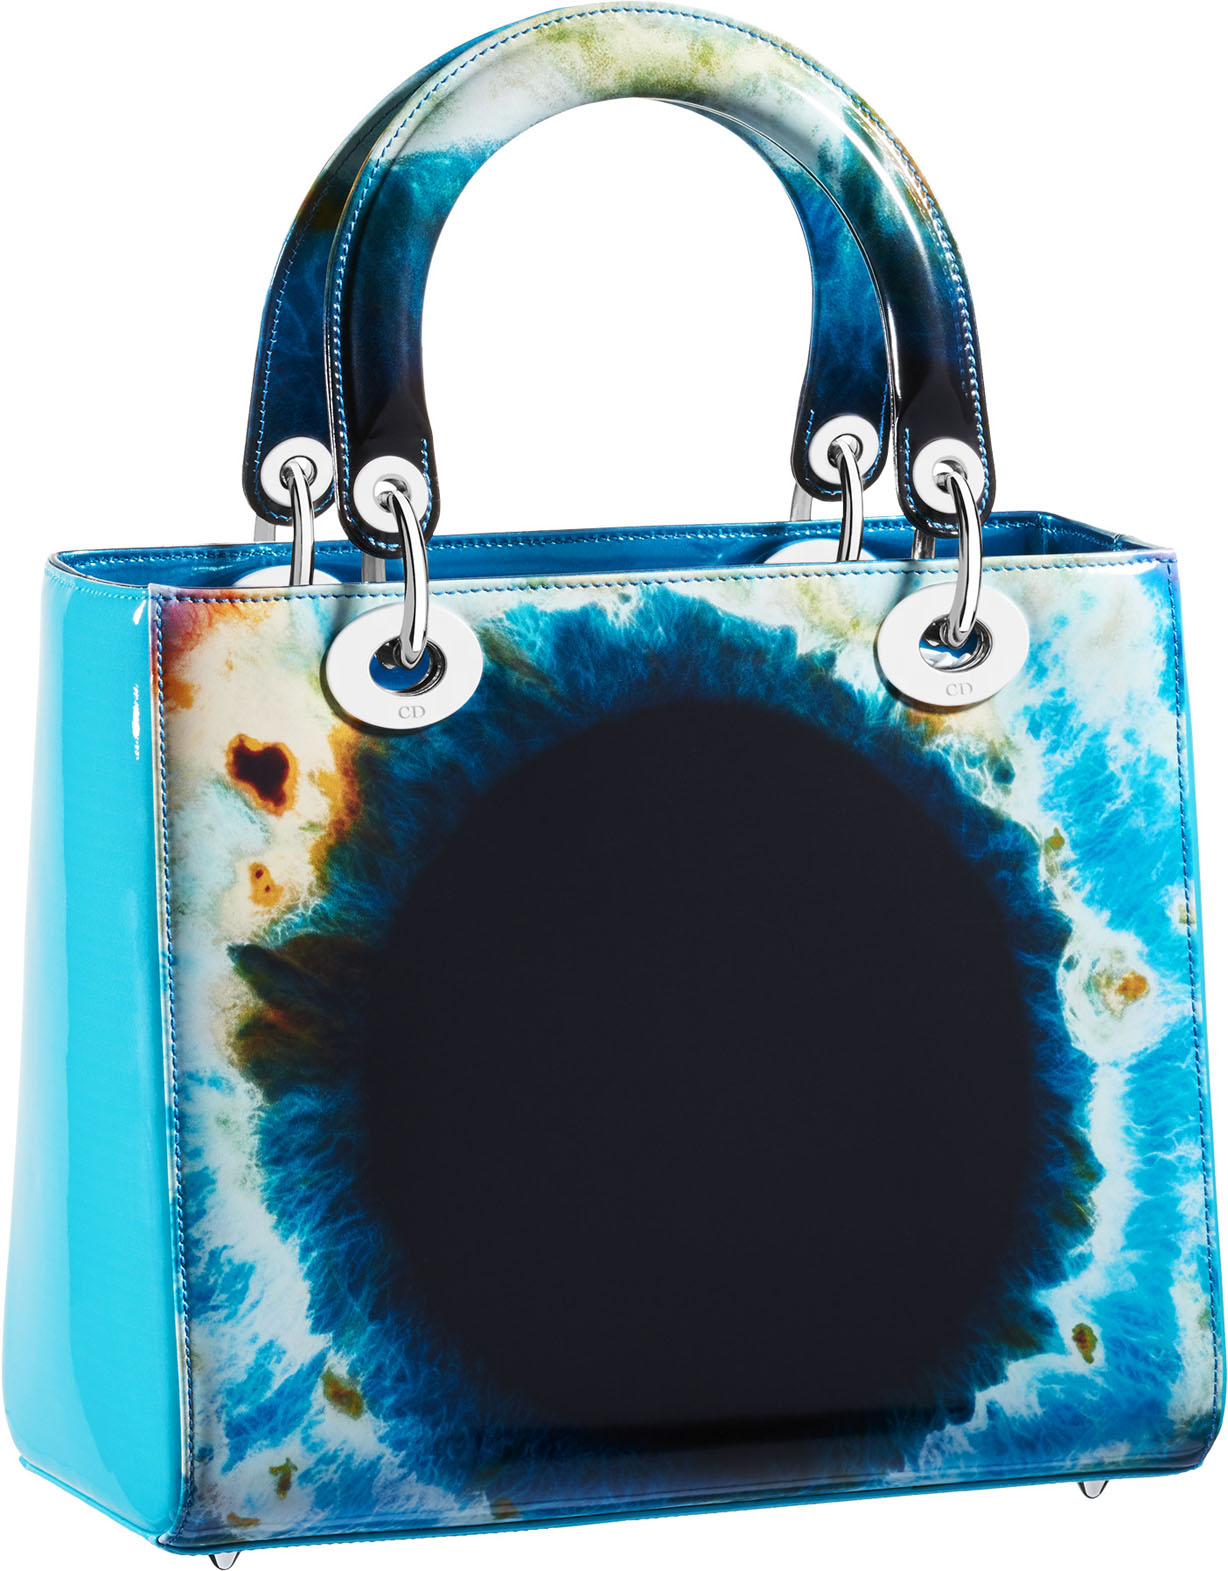 06bd38fa02e2 The notorious British contemporary artist Marc Quinn created a limited  edition of Lady Dior ...